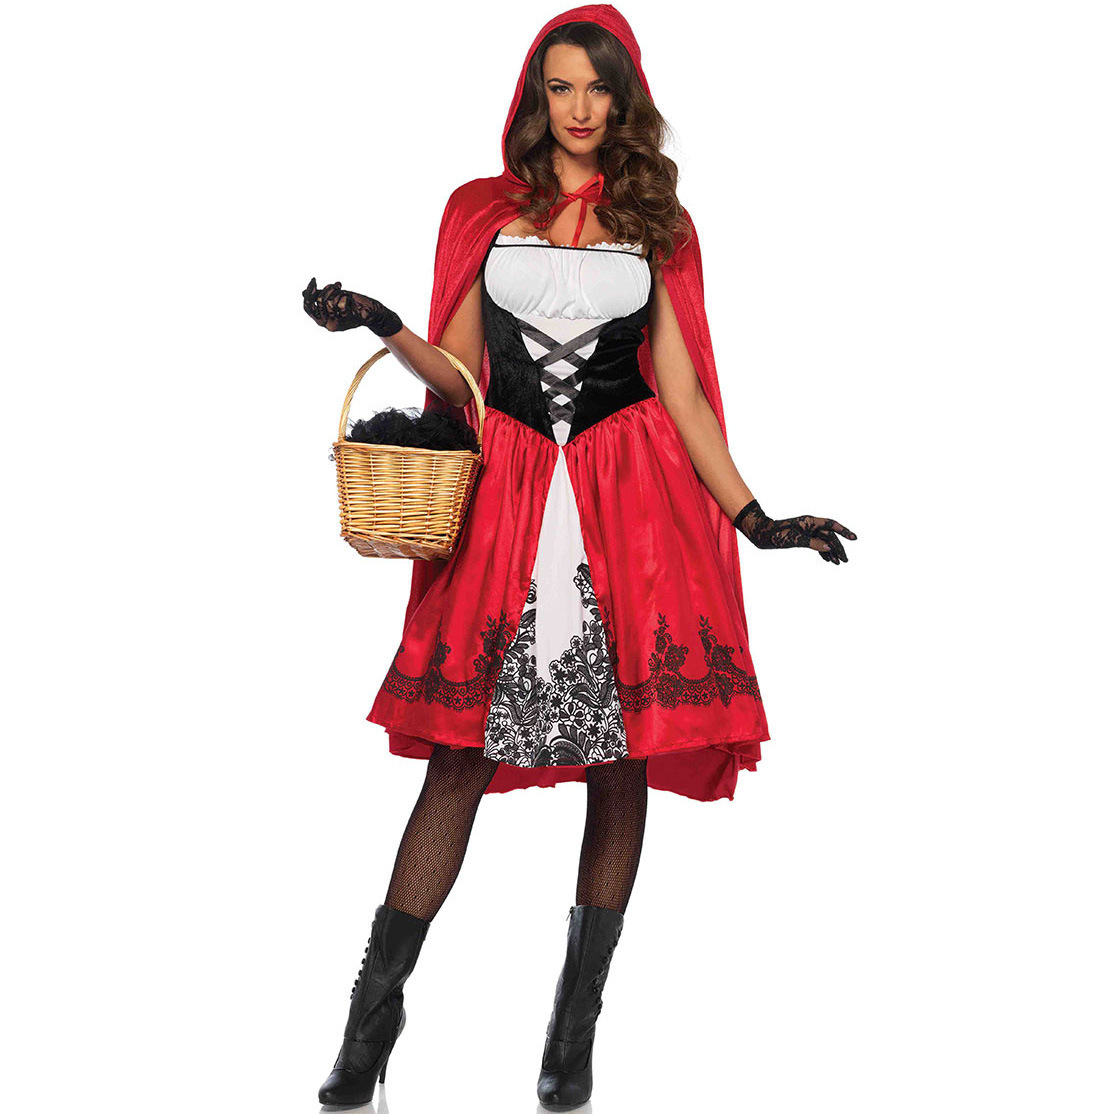 S -3XL Big size Halloween Sexy Cloak Small Red Hat Clothing Cosplay Role Uniform Little red riding hood anime costume women